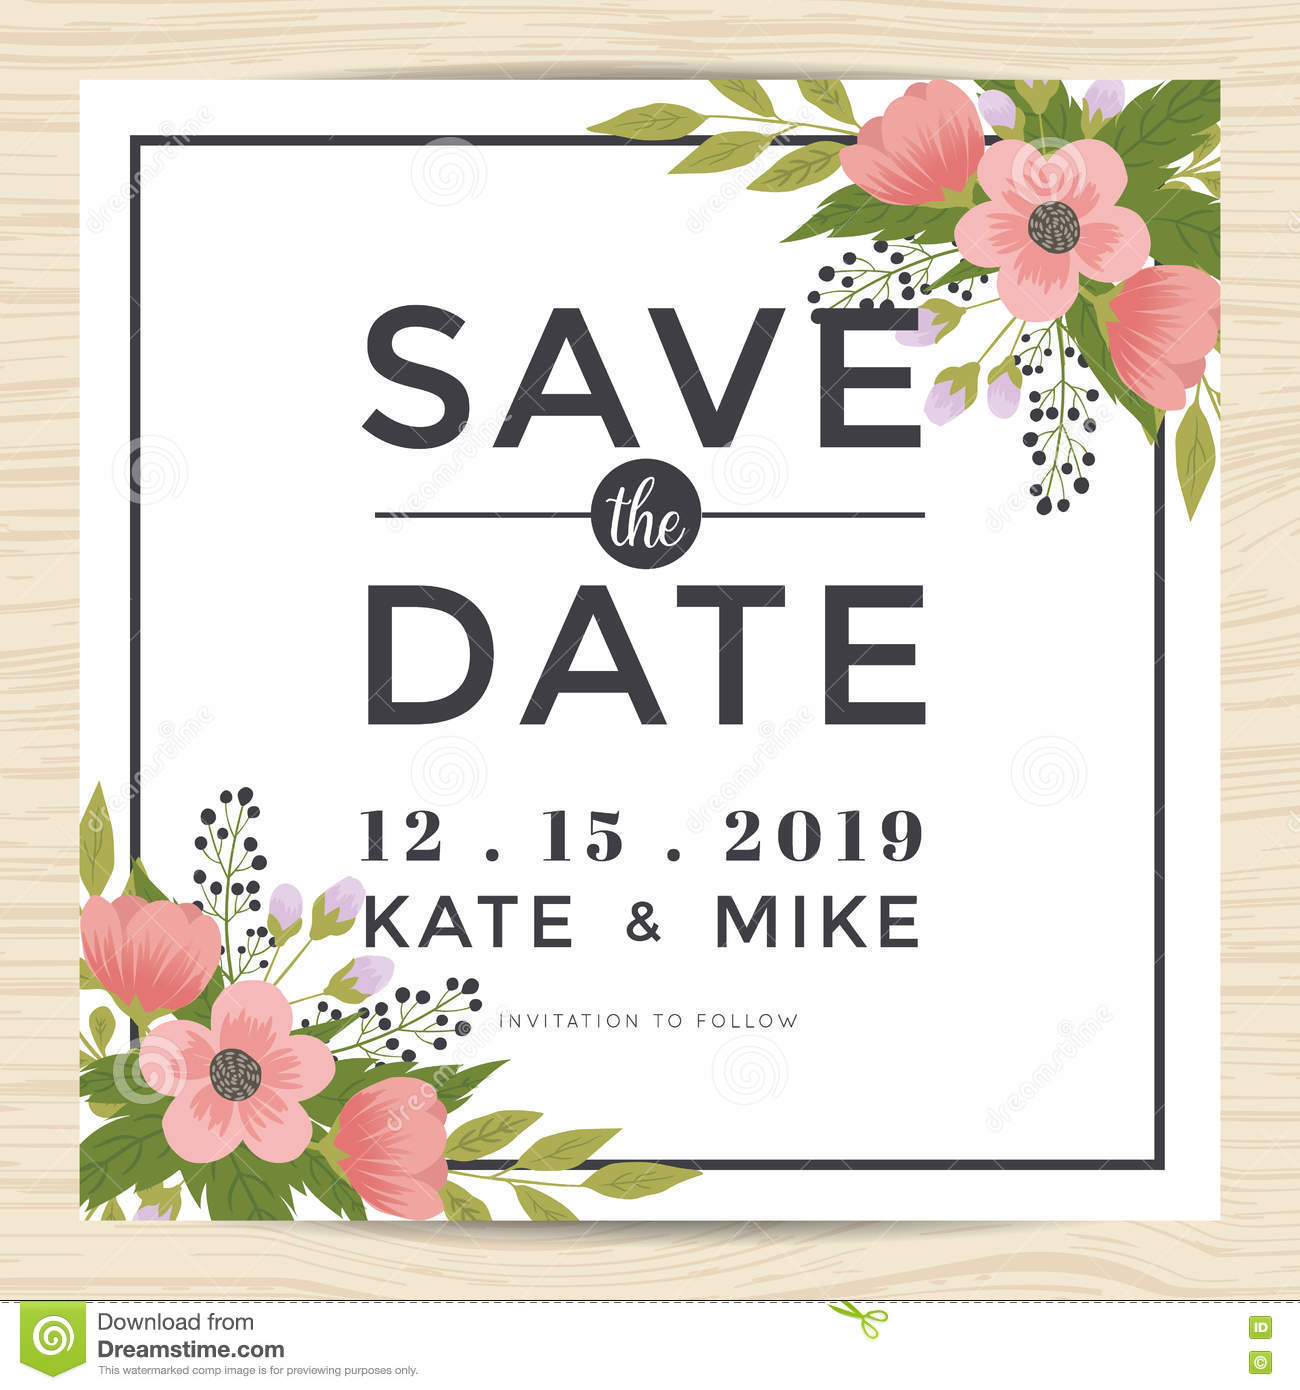 vintage save the date templates free - save the date wedding invitation card template with